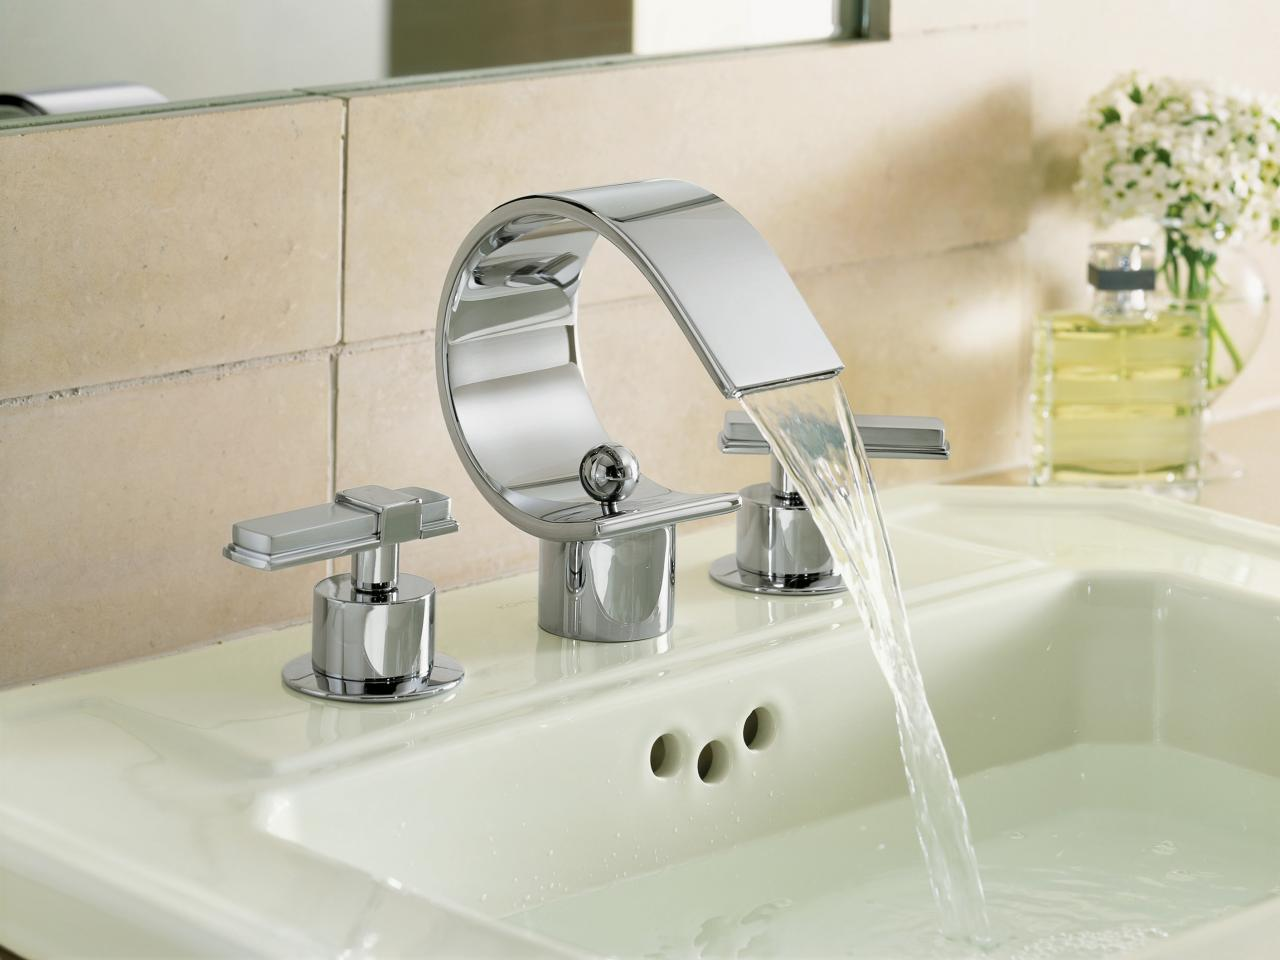 Fancy Sink Using Stainless Steel Curve Modern Bathroom Faucets Design